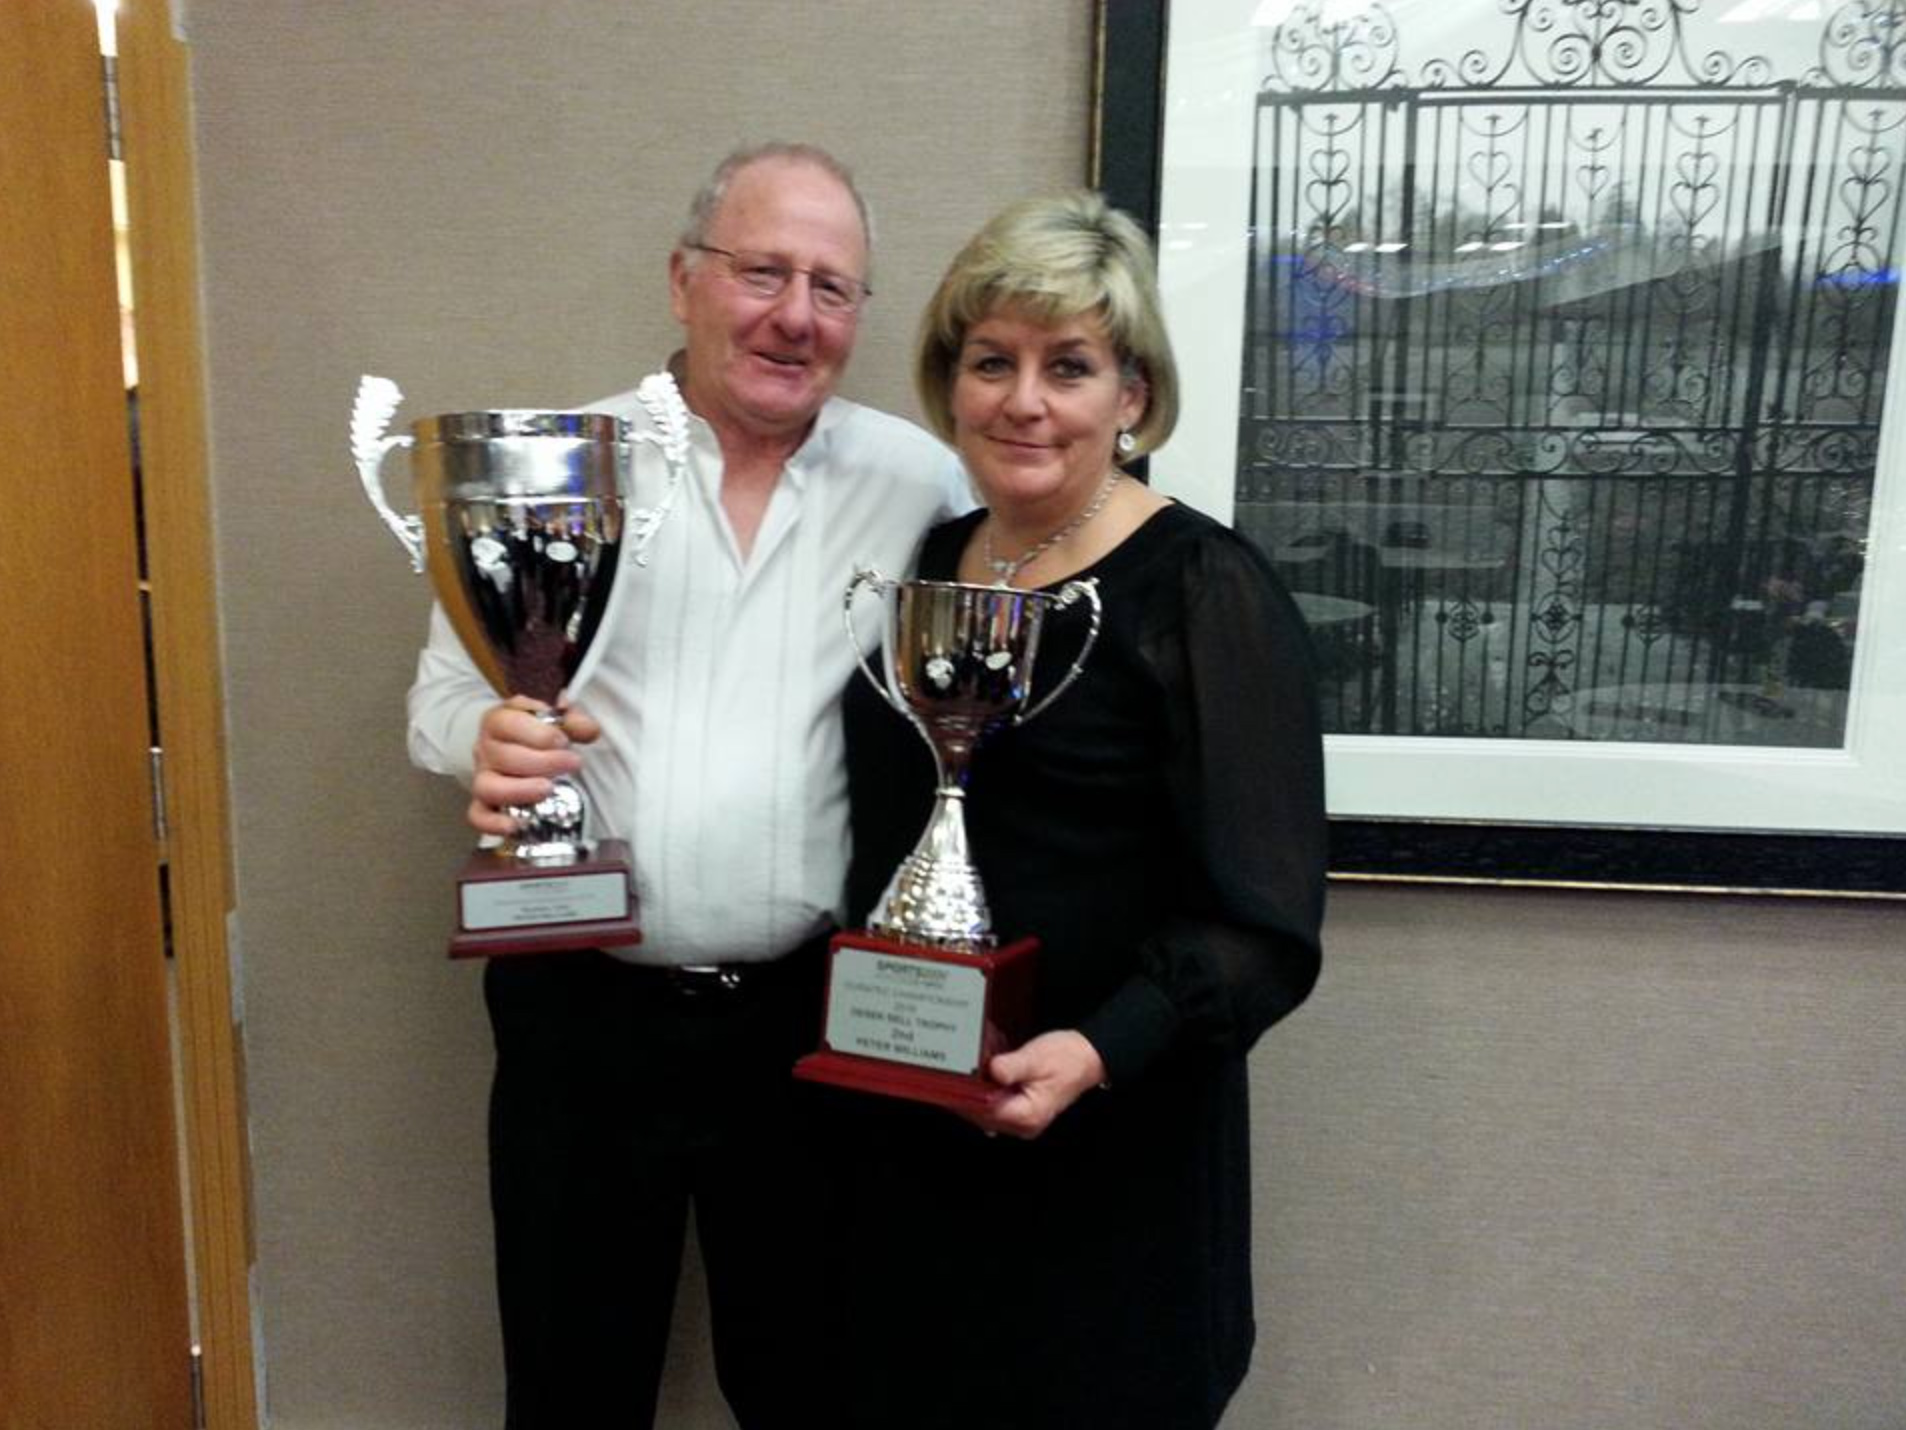 Peter Williams 2nd Sports 2000 Duratec Championship Derek Bell Class, 2nd Overall Sports 2000 Mini Endurance Series with his wife Margaret